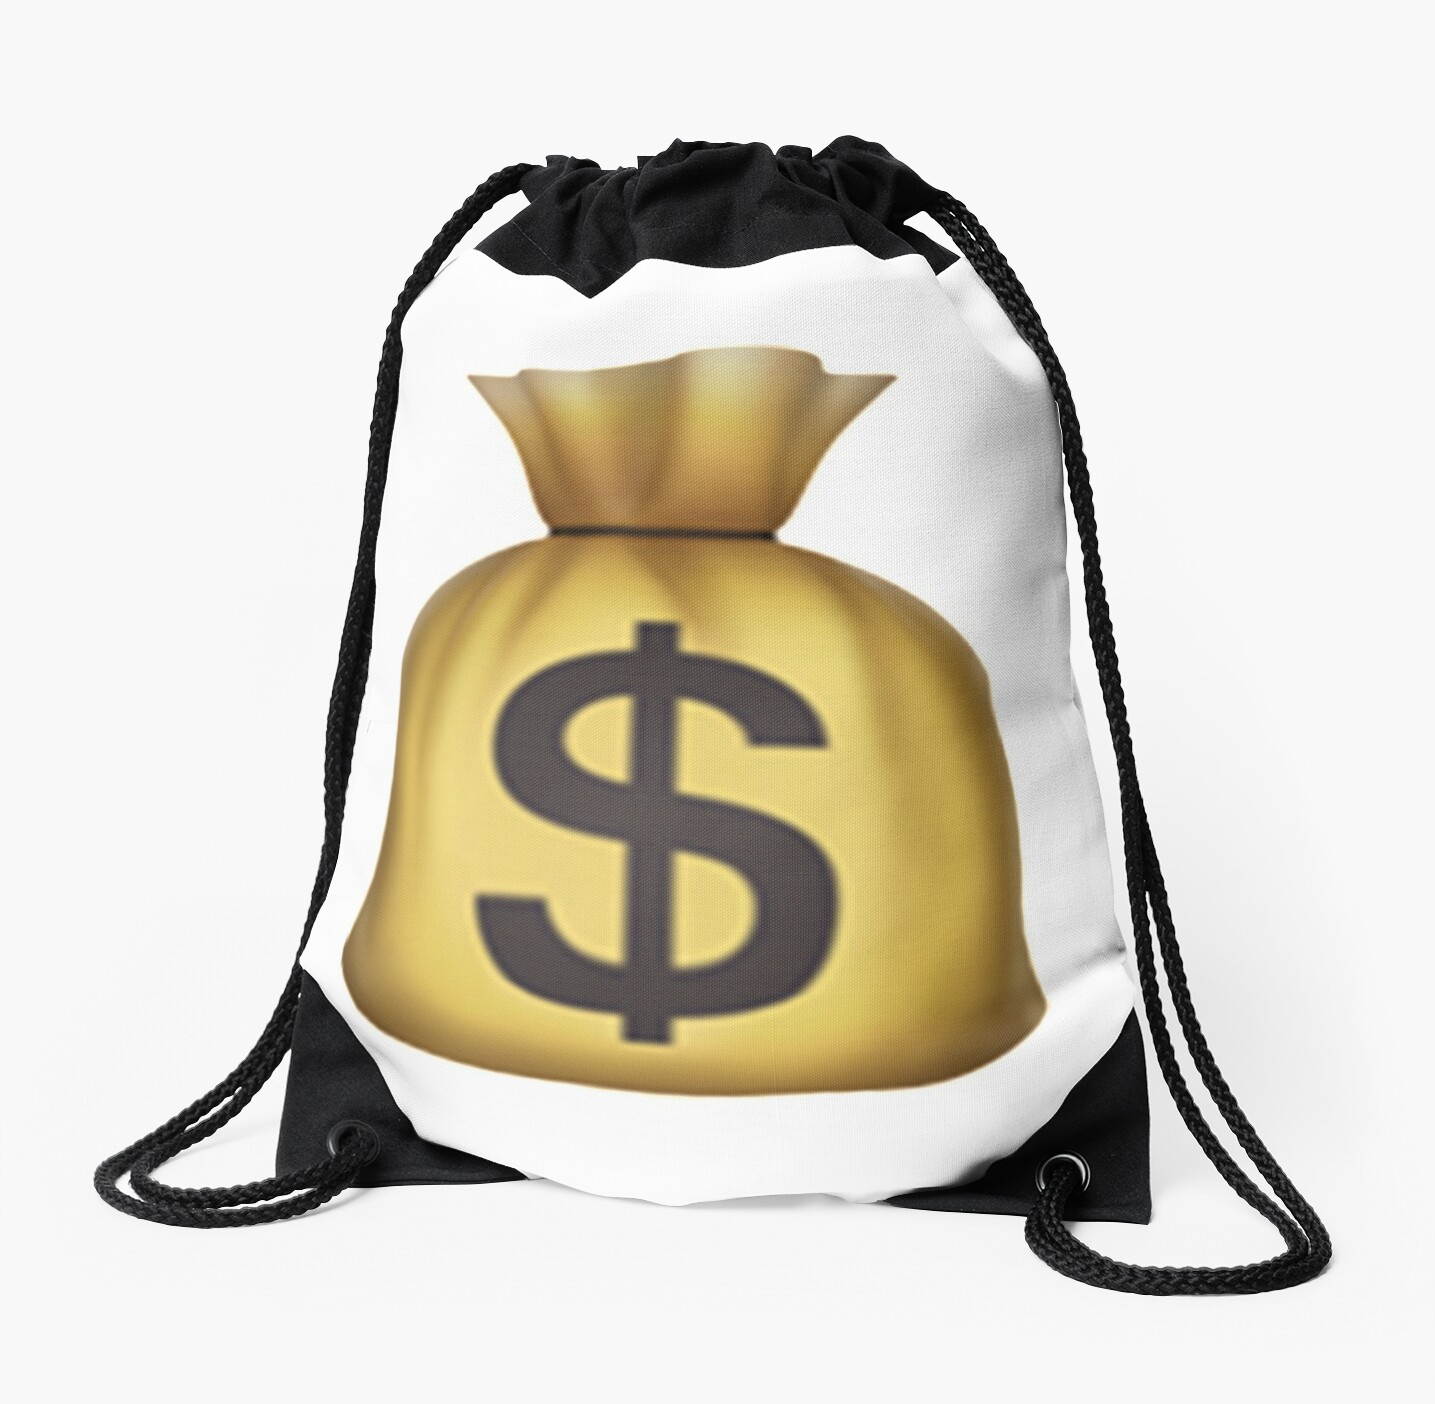 Money Bag Emoji